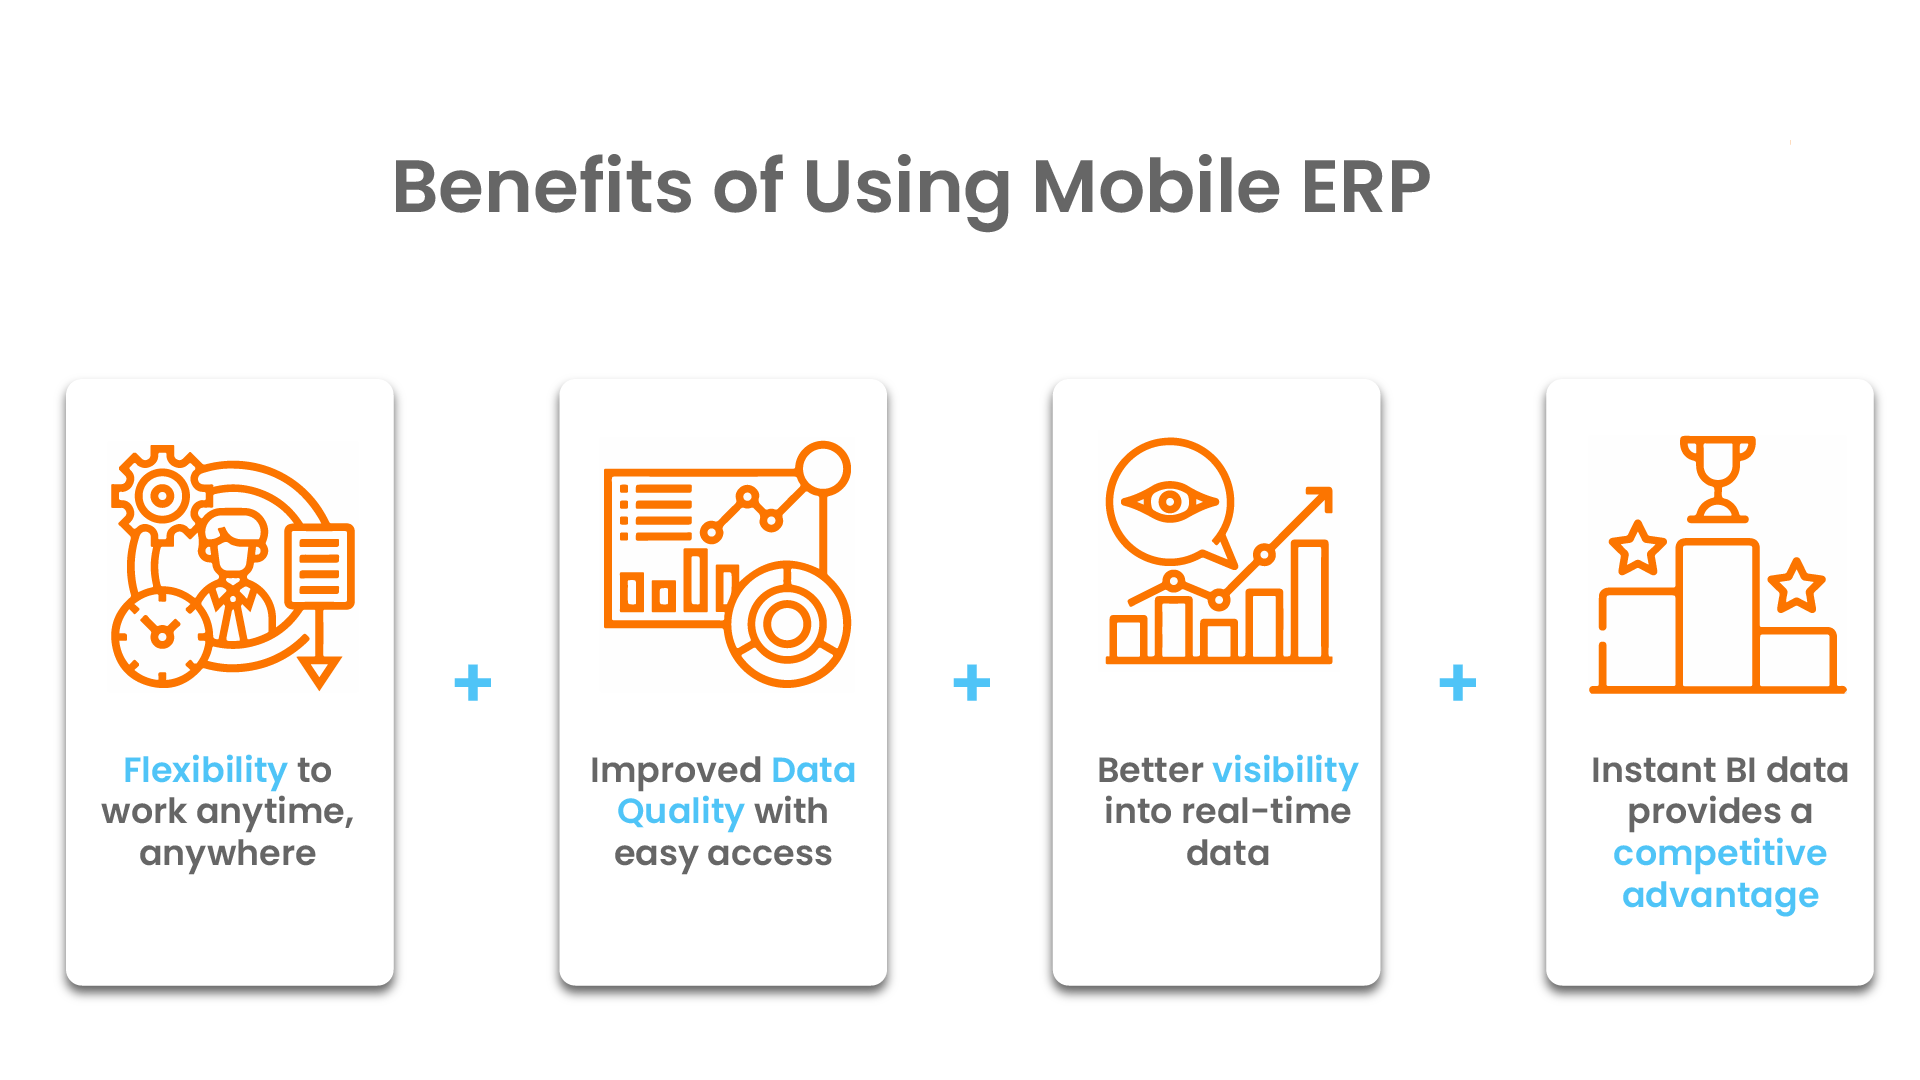 Benefits of using Mobile ERP